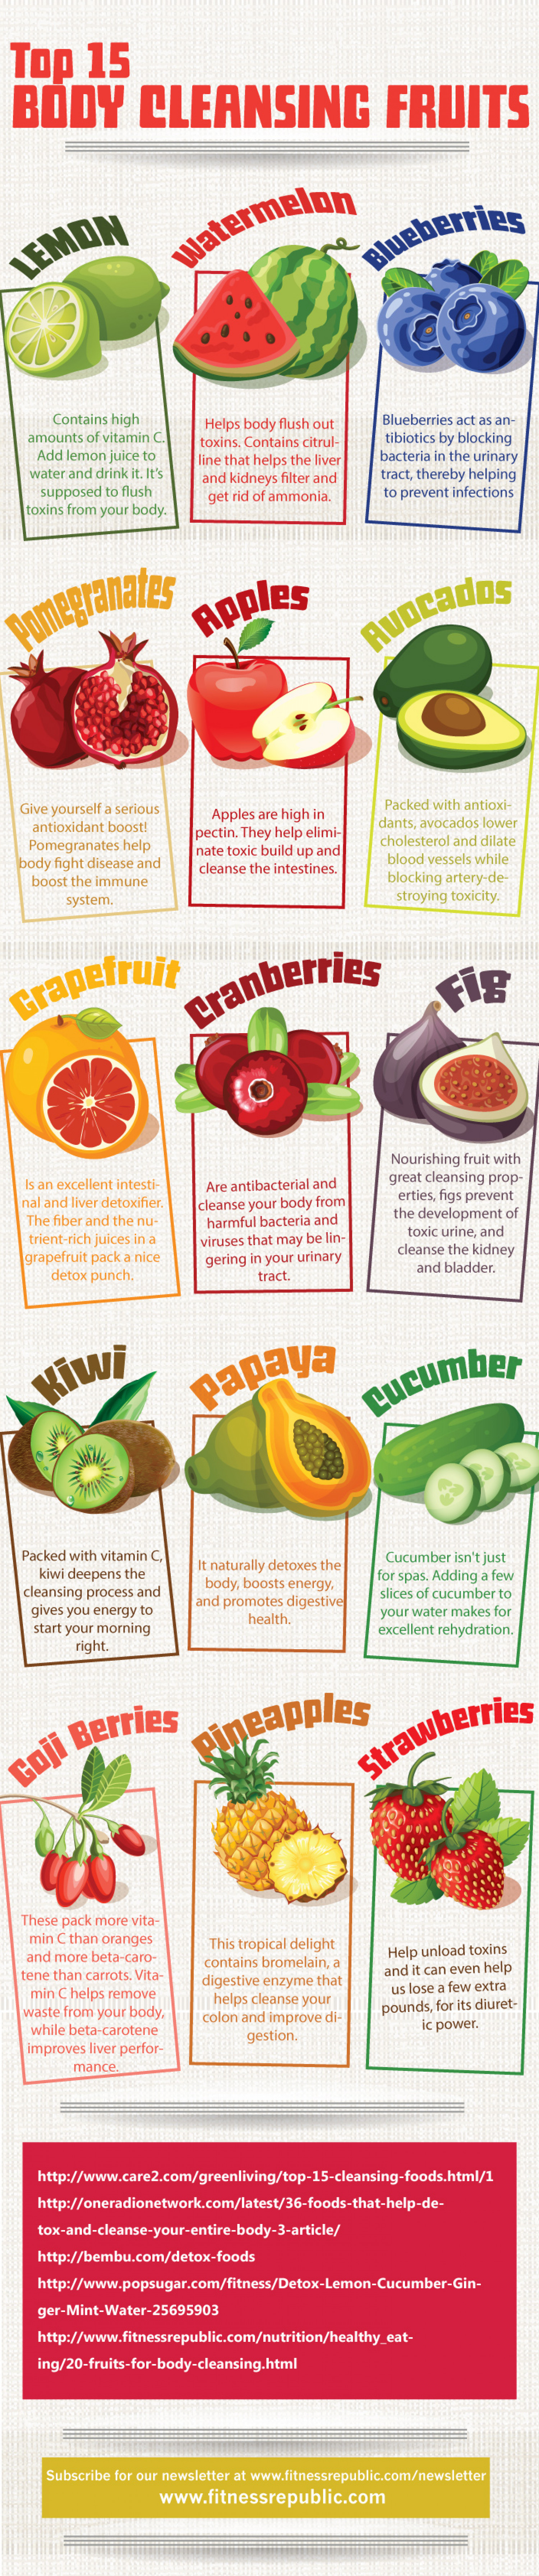 Top 15 Body Cleansing Fruits Infographic